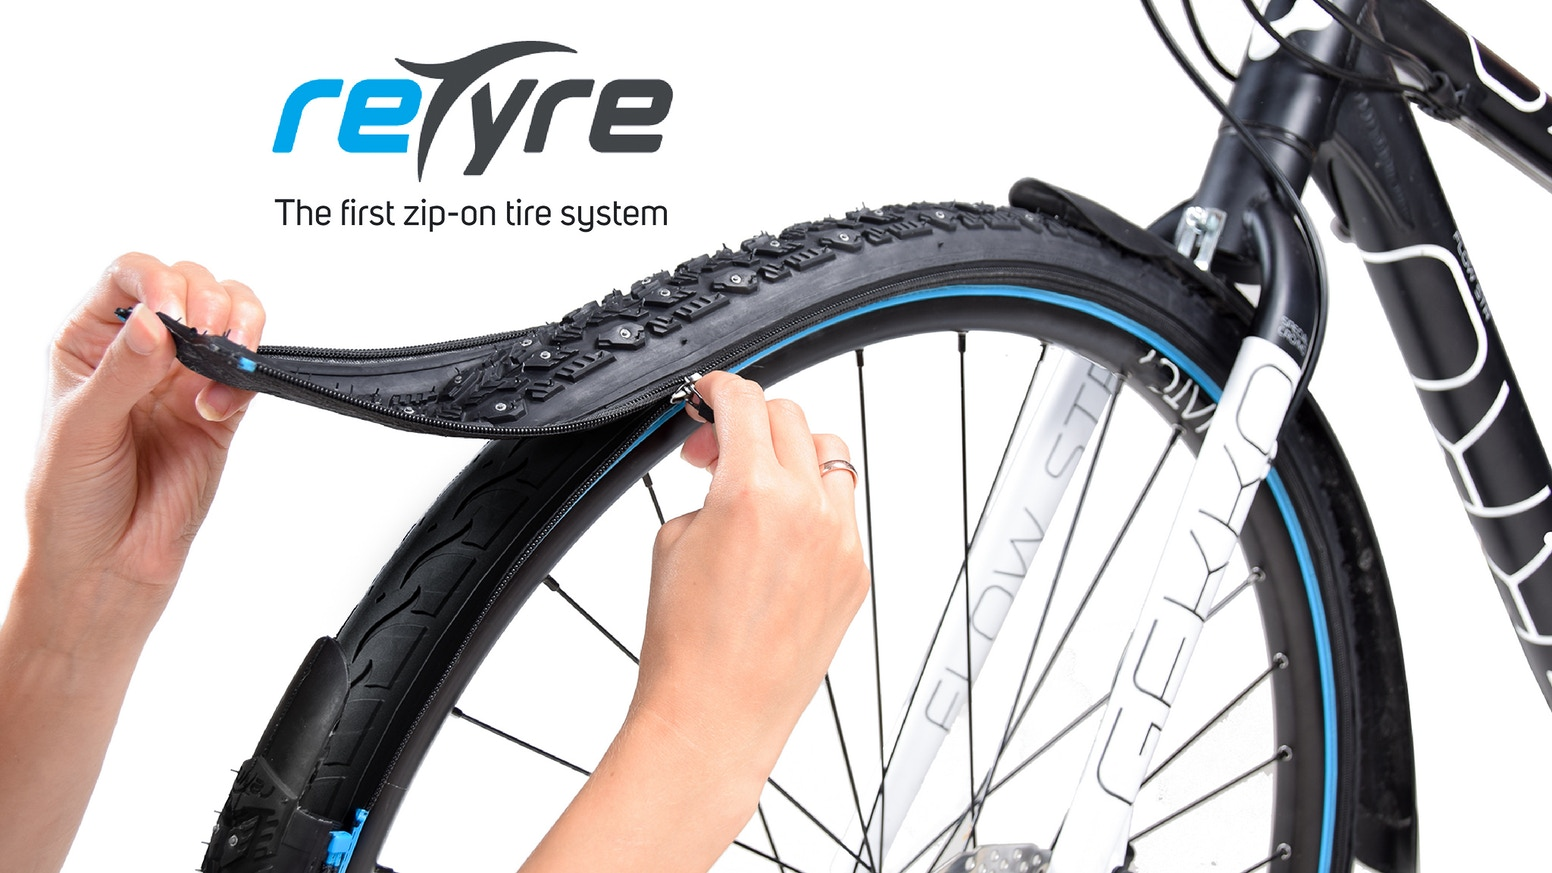 Available for purchase at www.buy.retyre.co  Change your tire in seconds for a better biking experience. reTyre lets you instantly swap out your tire treads to match your terrain.